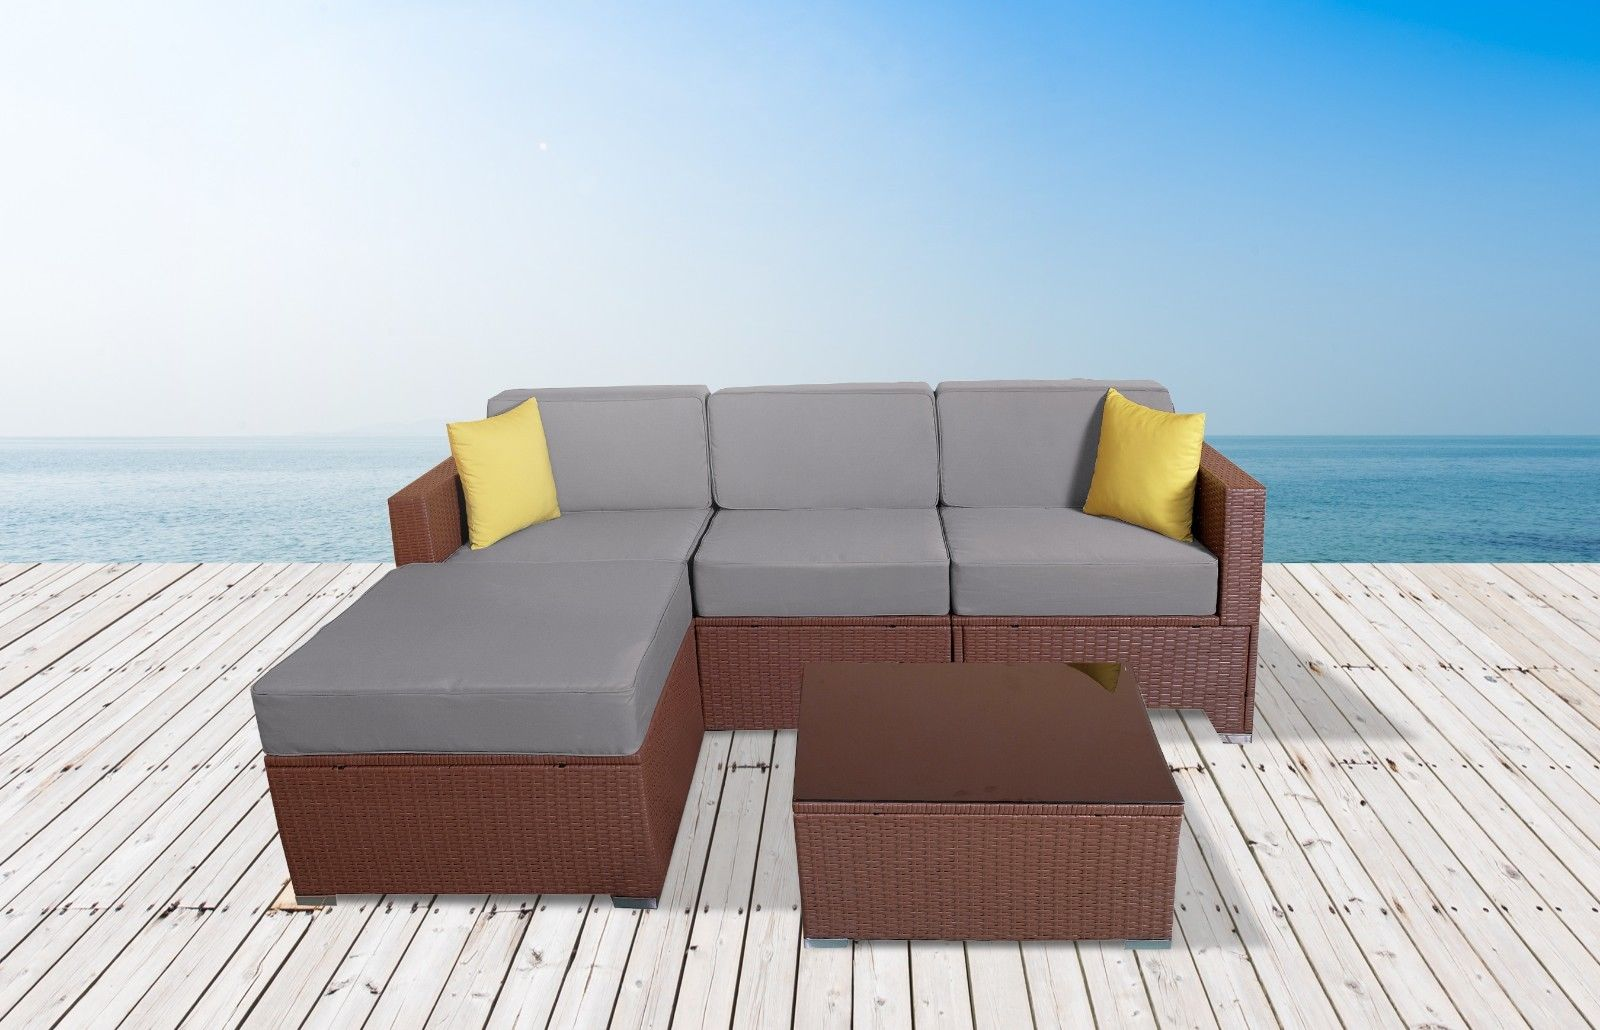 Owen 5 Piece Rattan Sofa Set With Cushions Mcombo 5pc Outdoor Rattan Sofa Wicker Chair Patio Furniture With Table Sectional Set Grey